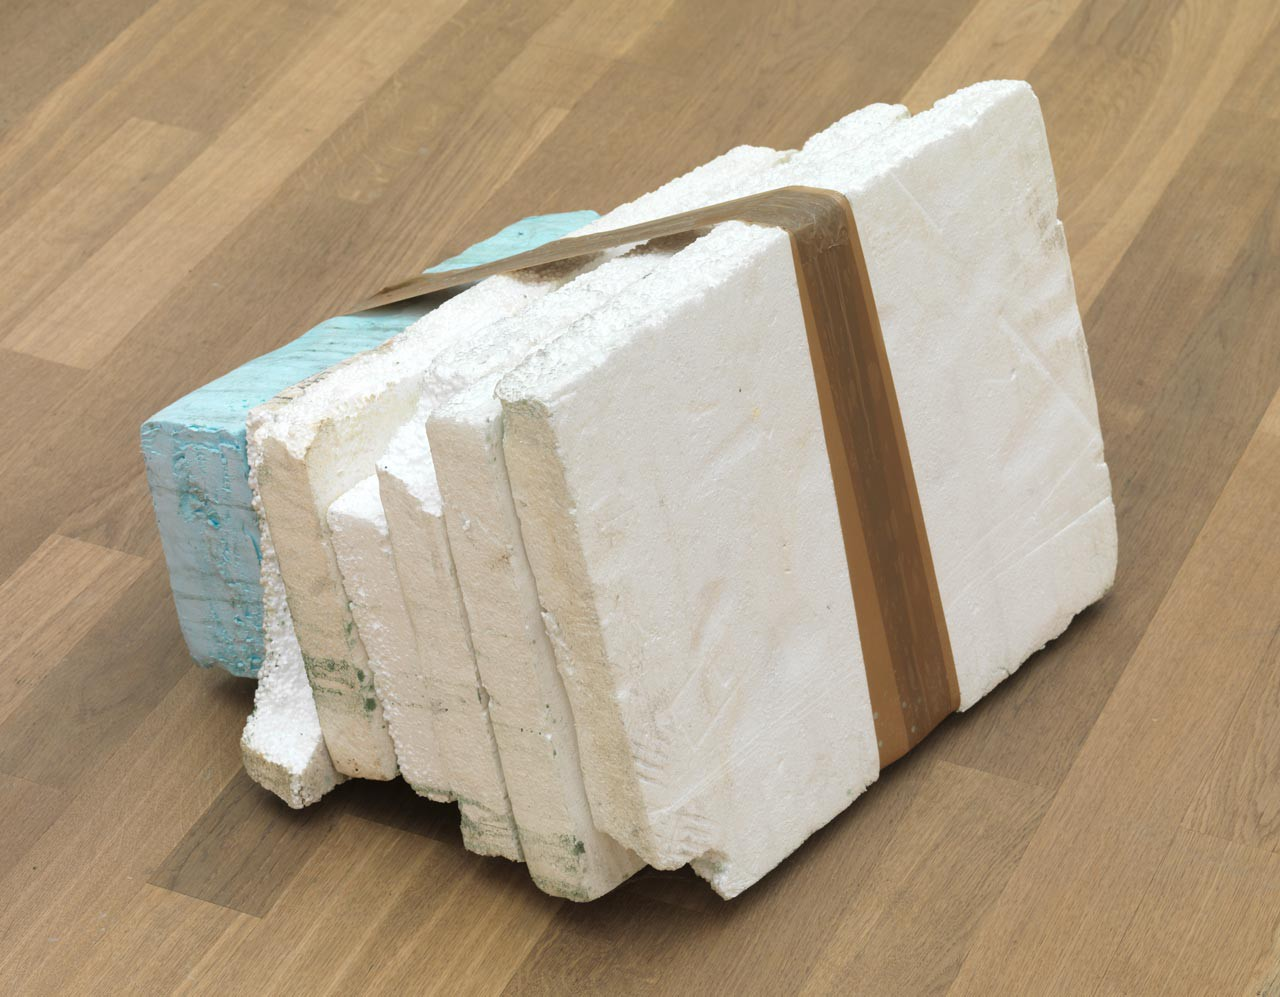 Untitled | 2011 | Styrofoam, Styrodur, tape, colour dust | 30 x 50 x 40 cm | photo: Bernd Borchardt